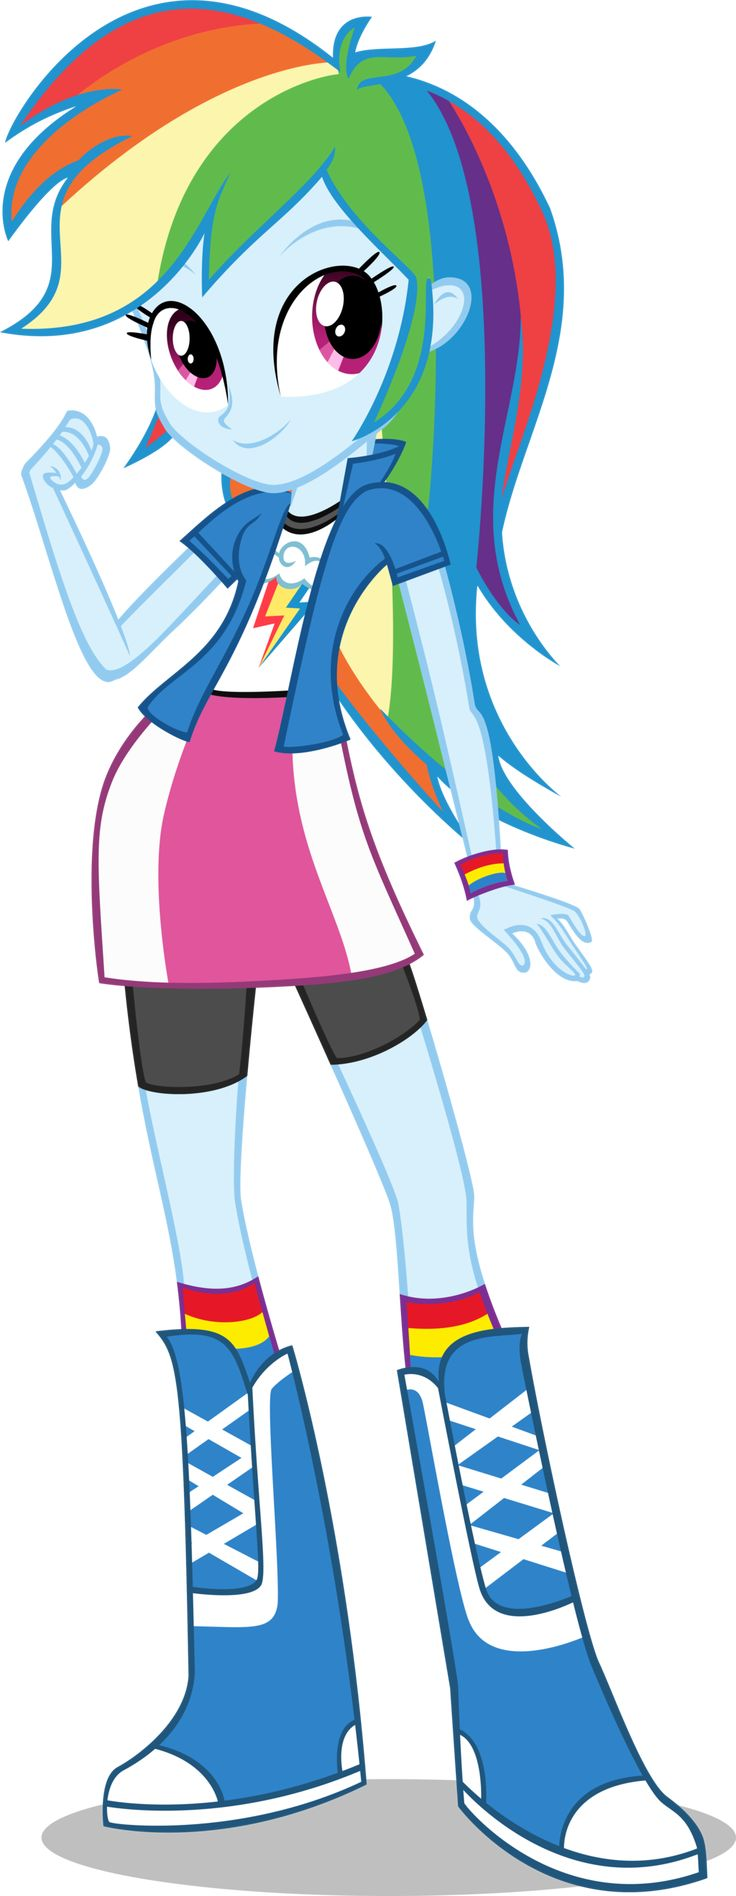 Inspiration for a Rainbow Dash Costume from the New Equestria Girls Movie